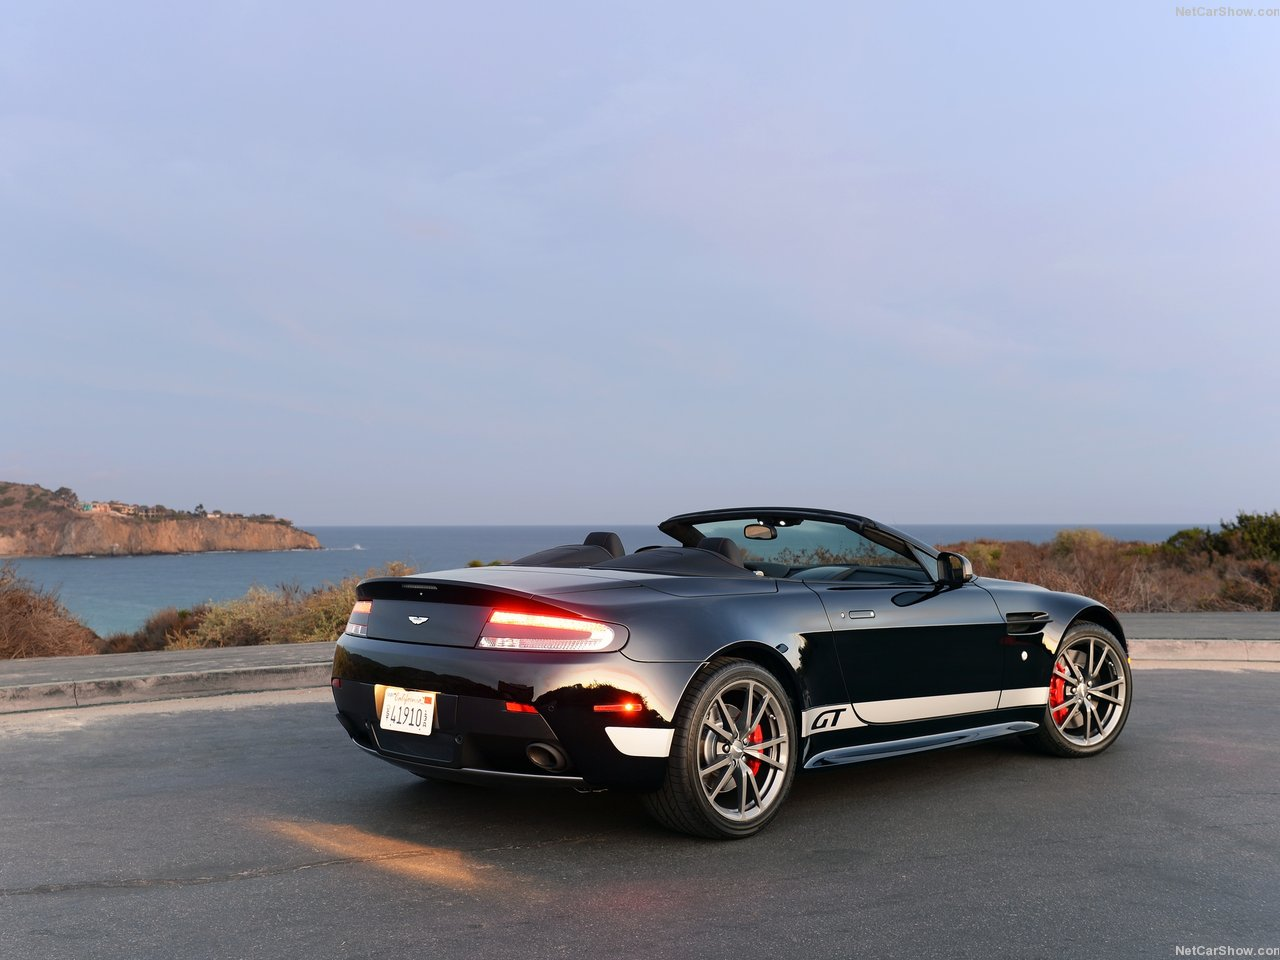 Aston Martin V8 Vantage GT Roadster photo 138292